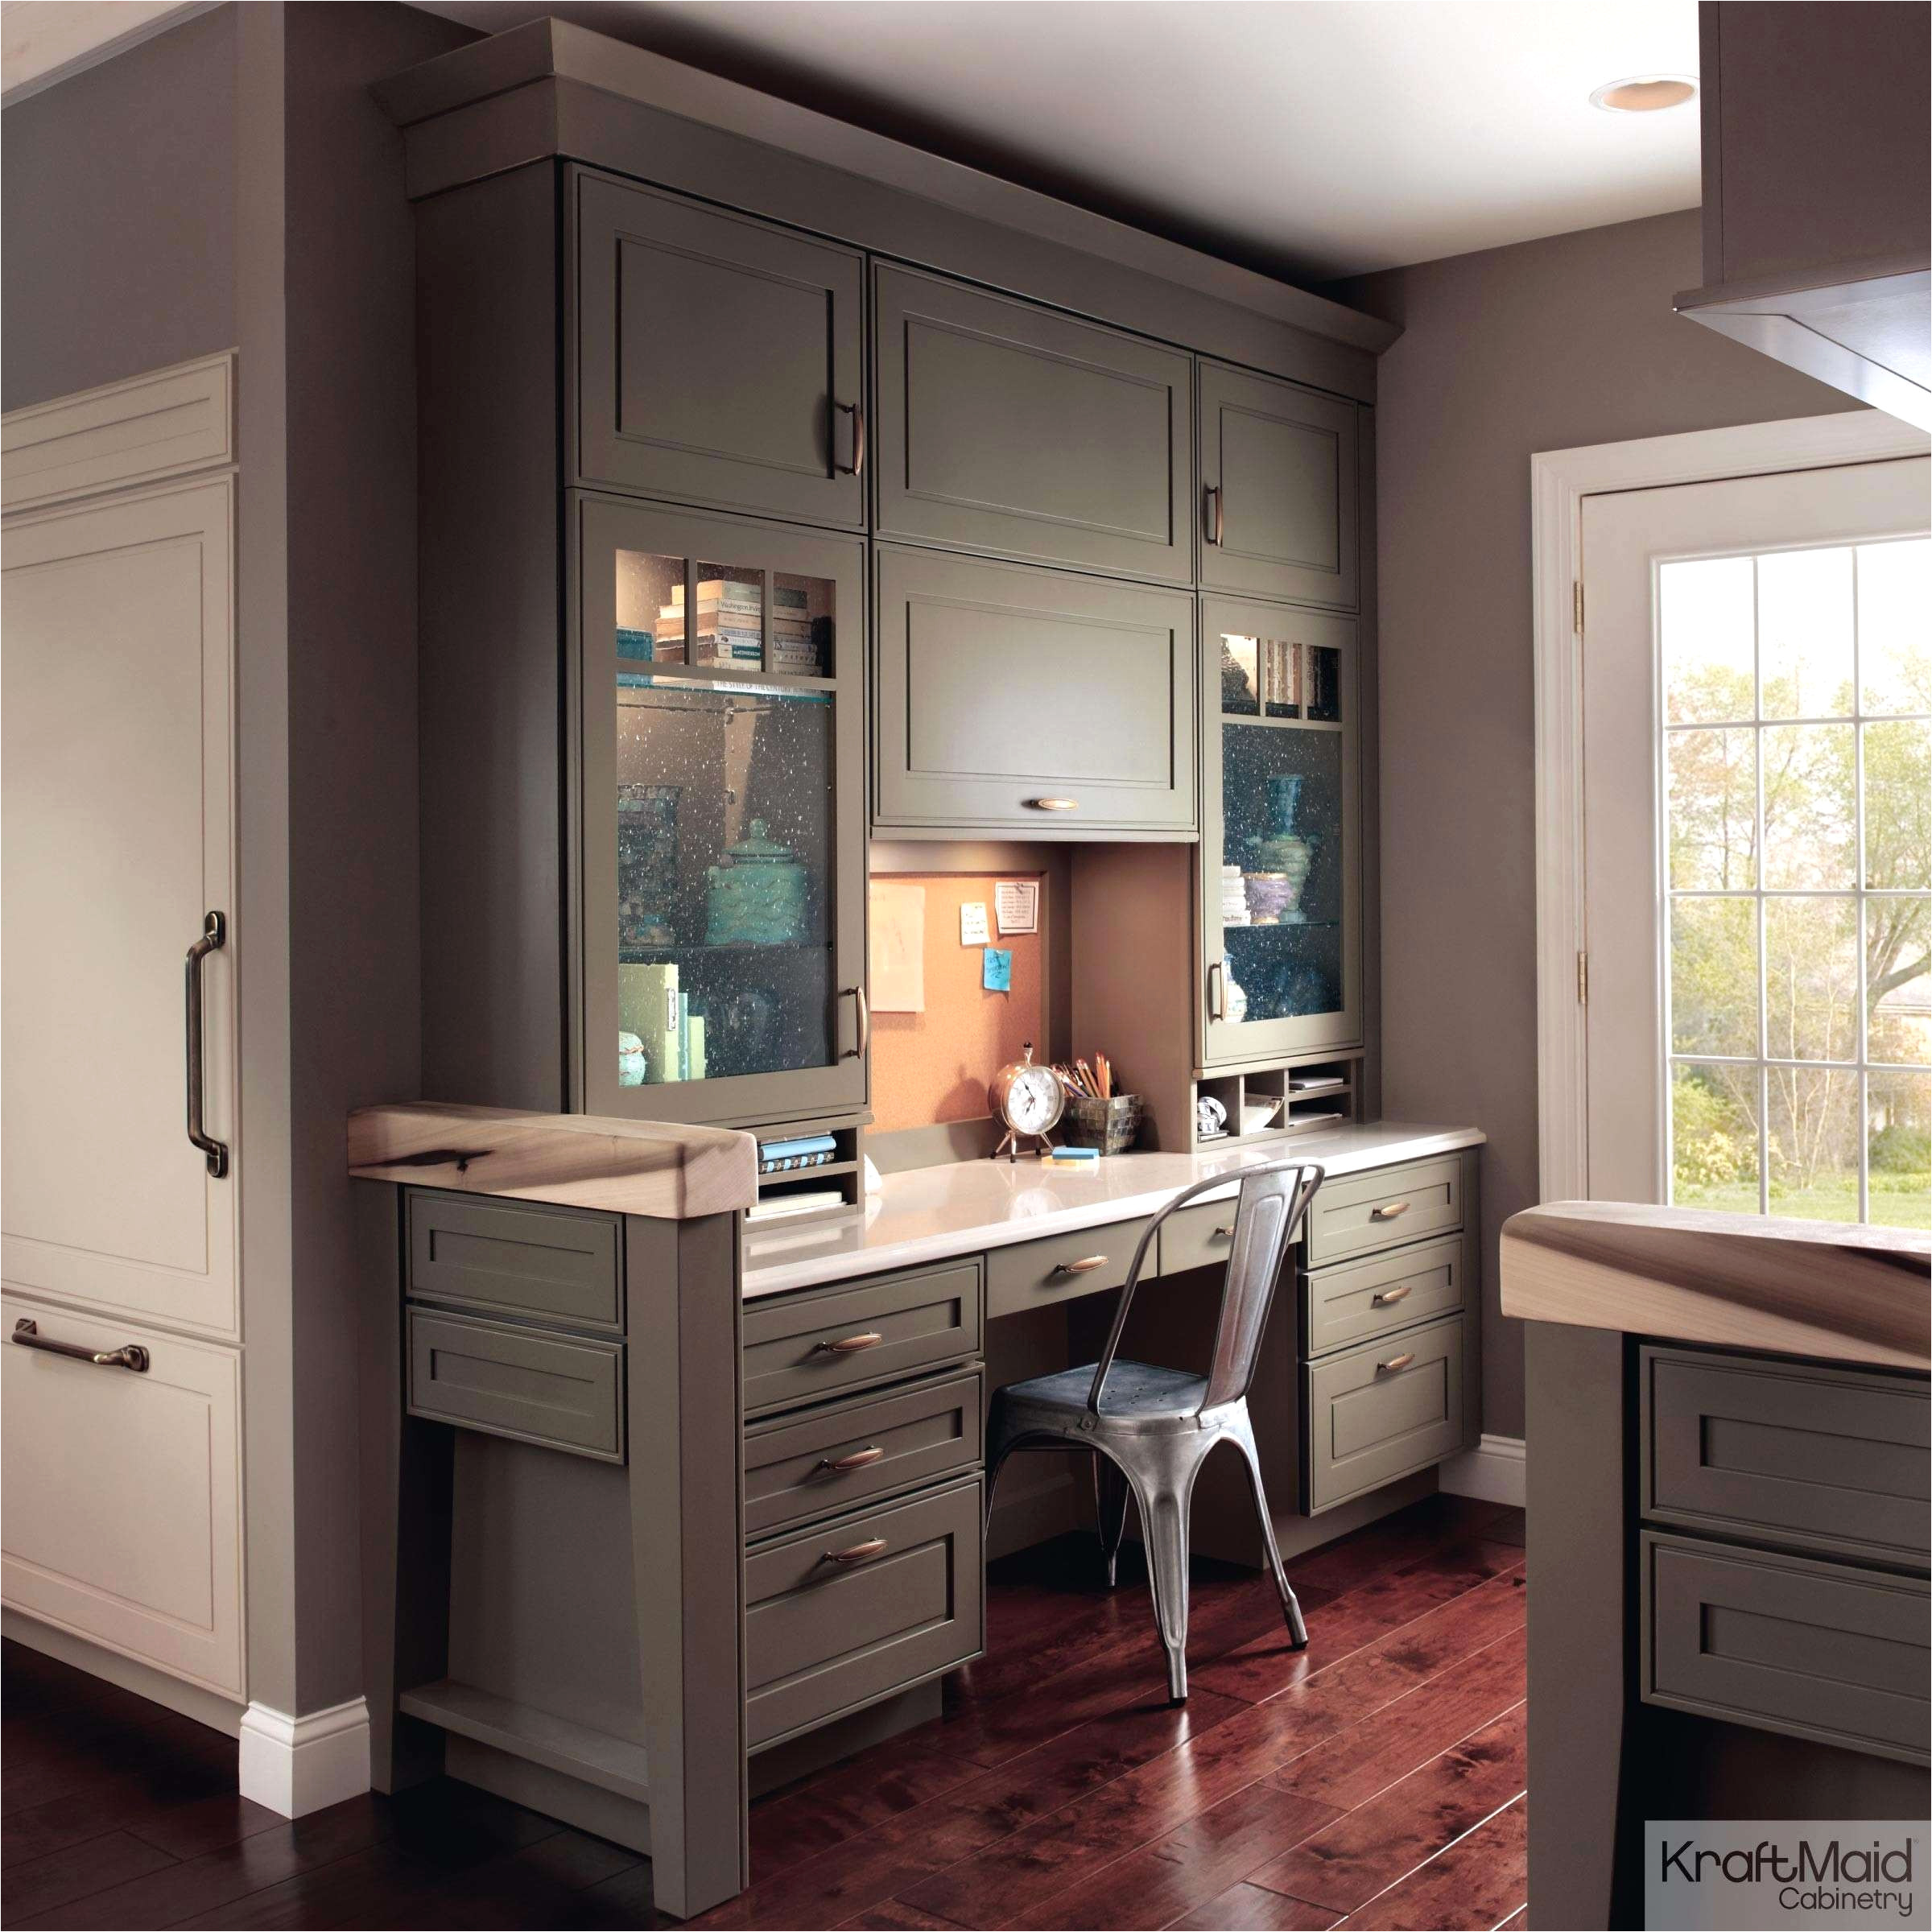 kitchen cabinets layout plans elegant kitchen design unique kitchen design layout best kitchen plans 0d